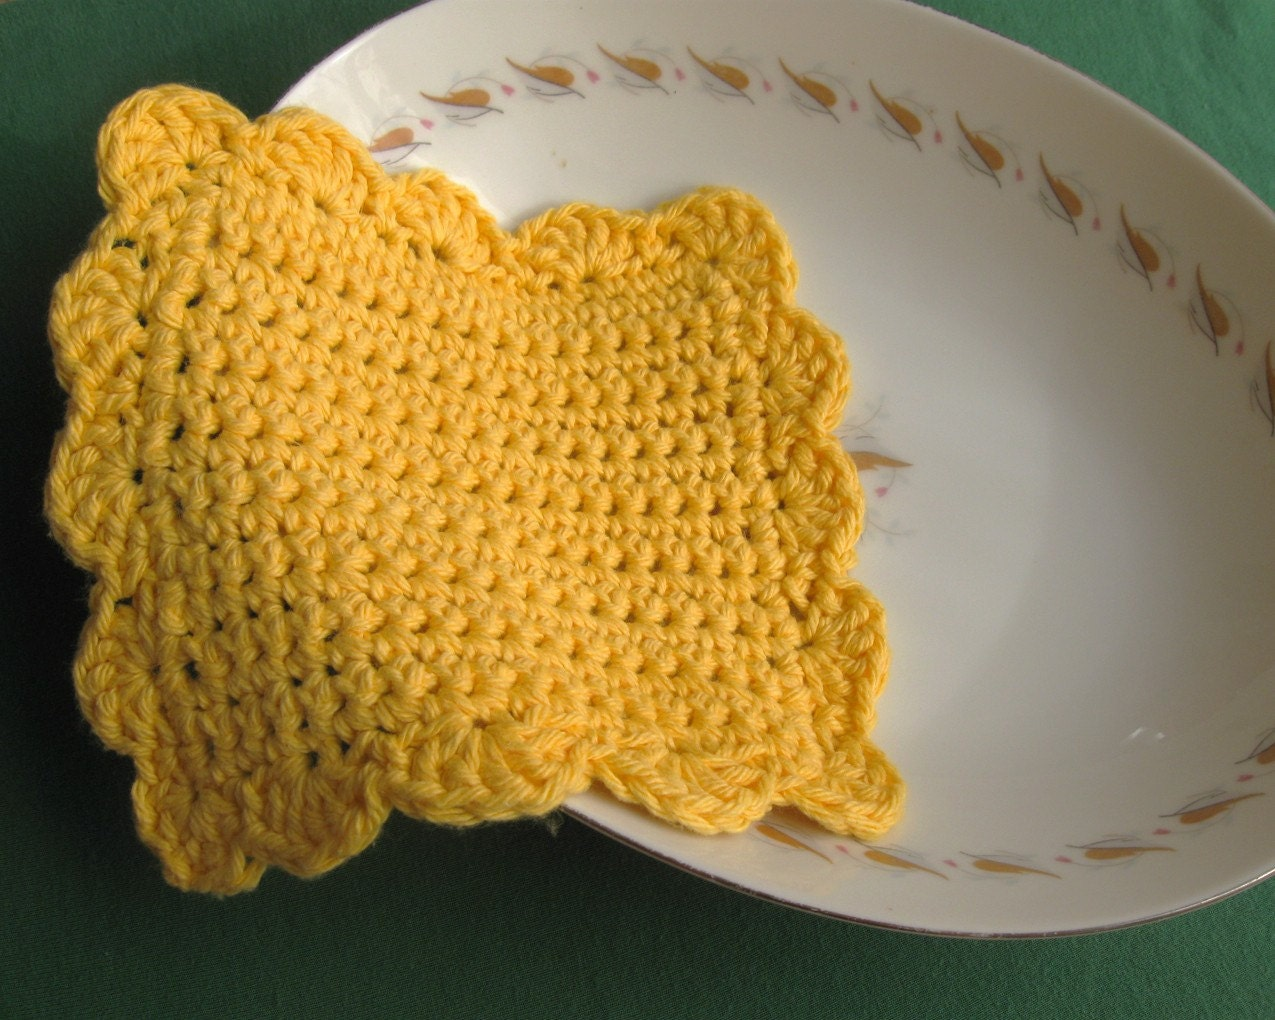 Crocheting Dish Rags : CROCHET DISH RAGS PATTERNS Crochet Patterns